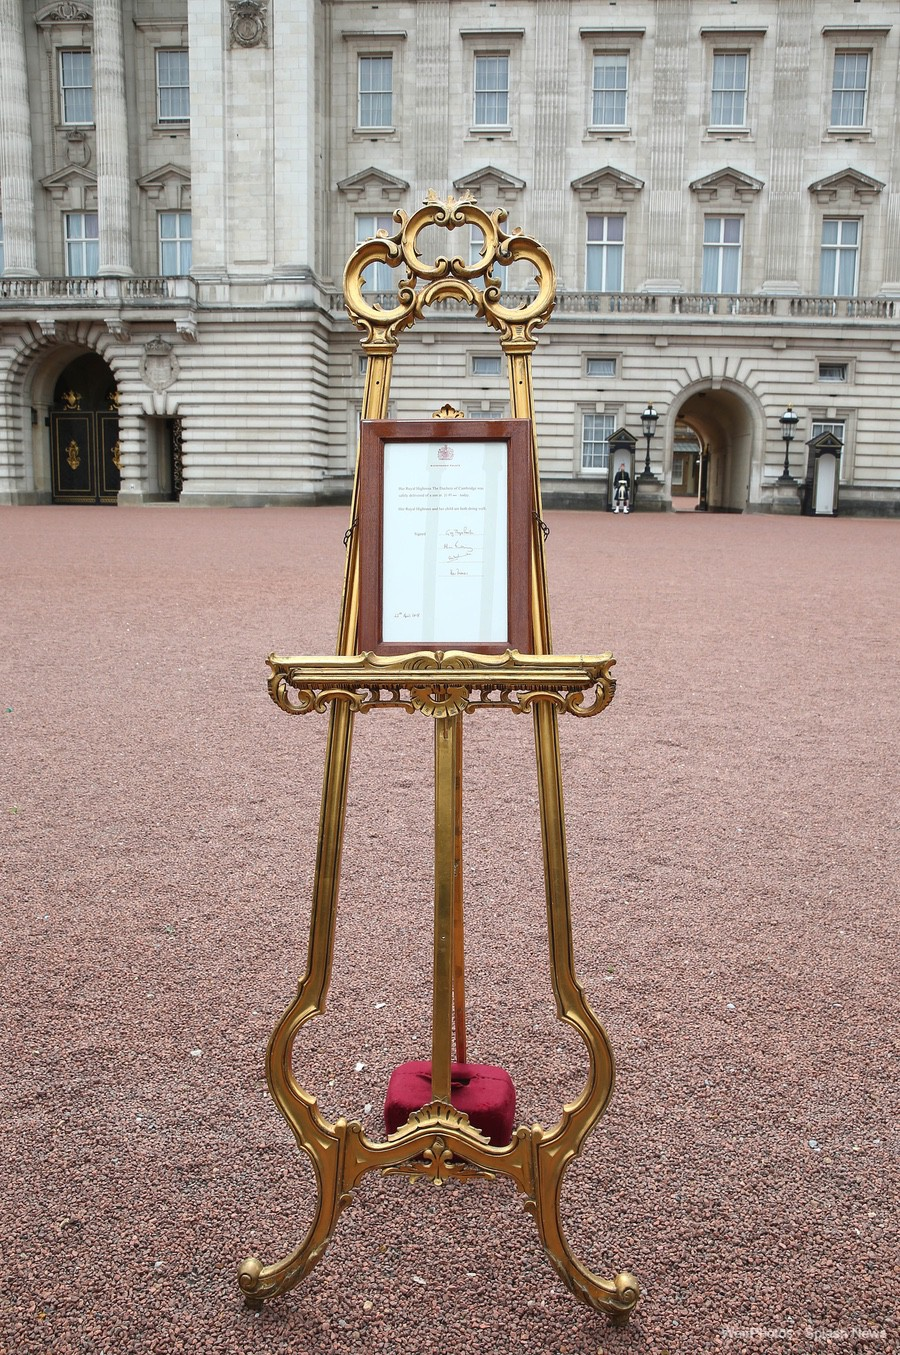 Royal Baby annoucement outside of Buckingham Palace